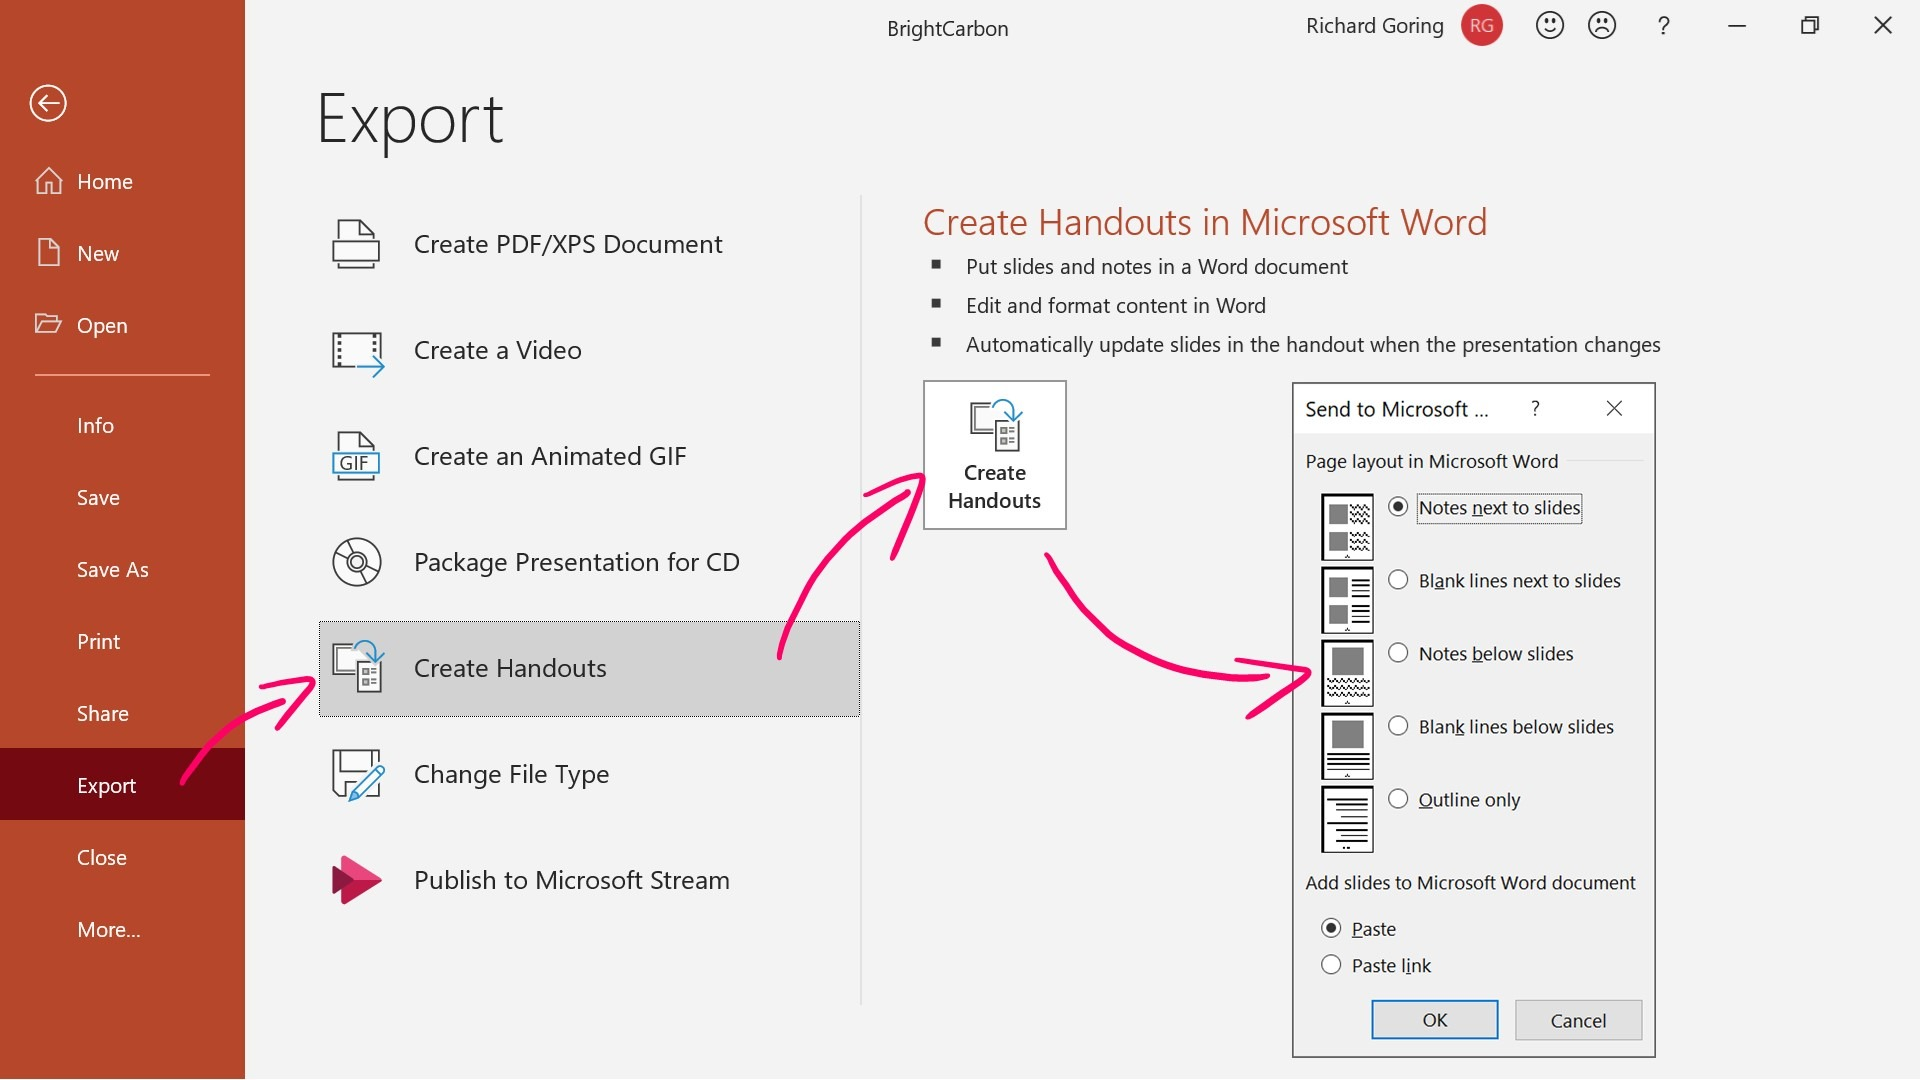 Screenshot of the Export options accessed under the File tab. 'Create Handouts' is selected and the 'Send to Microsoft ...' pop up window is open. an annotated arrow points to the 'Notes below slides' option.